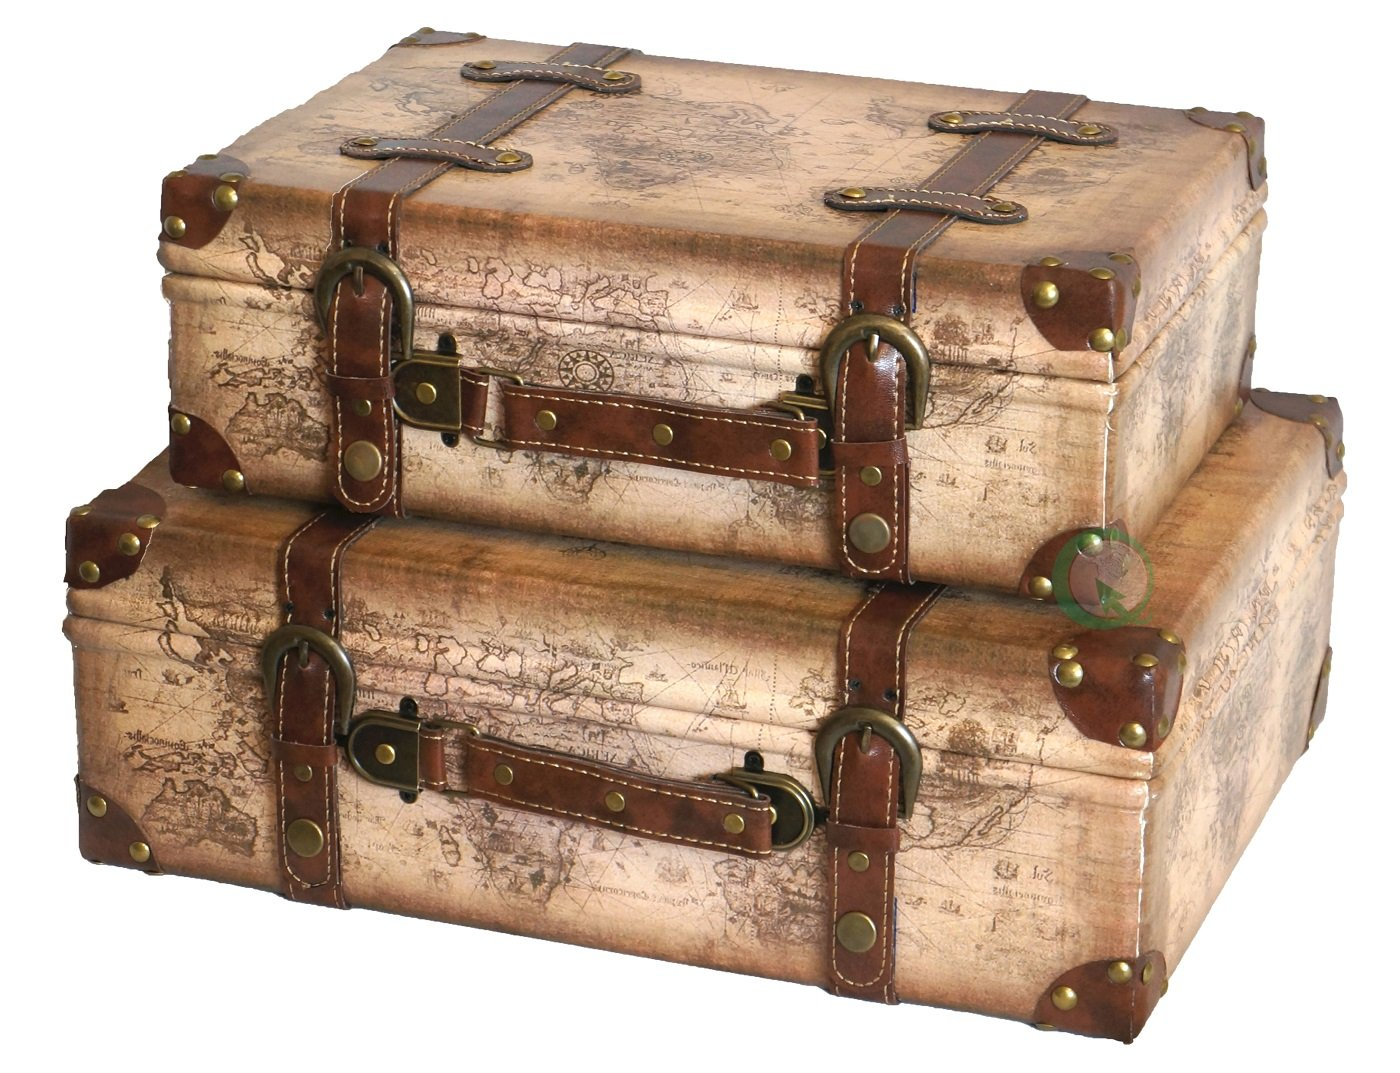 Vintiquewise(TM) Old World Map Leather Vintage Style Suitcase with Straps, Set of 2 by Vintiquewise